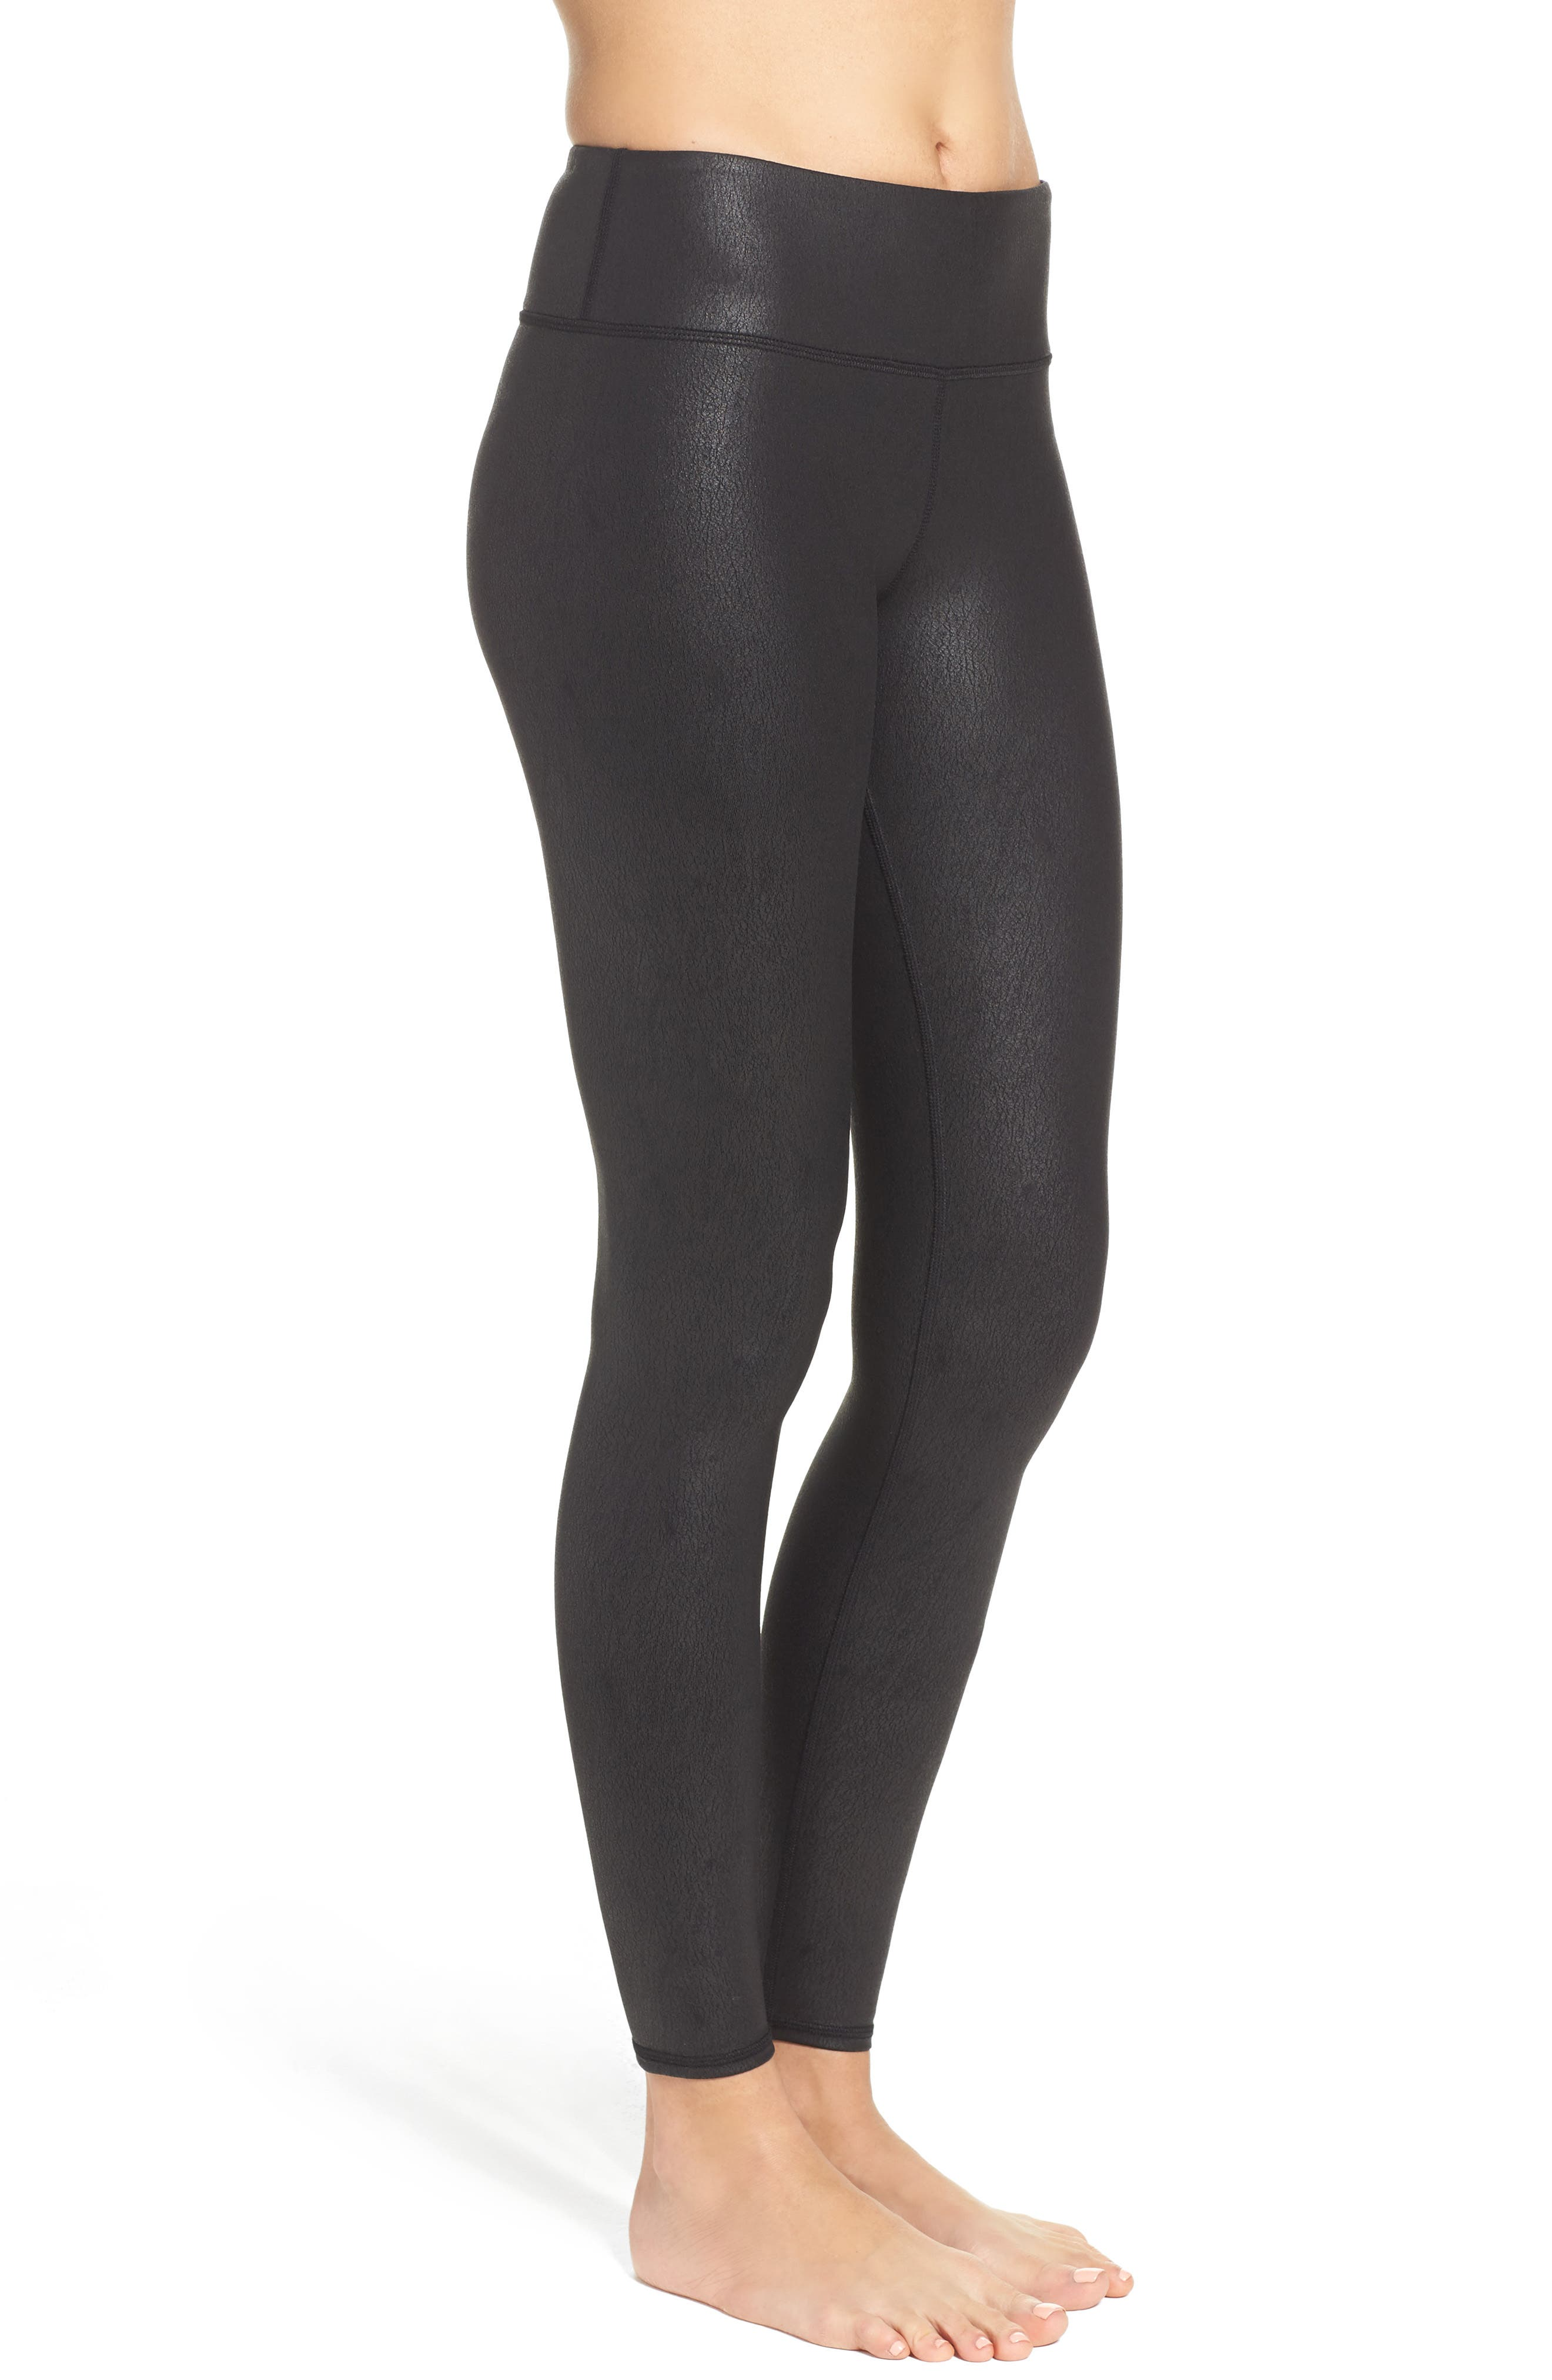 'Airbrushed' Leggings,                             Alternate thumbnail 3, color,                             Black Performance Leather